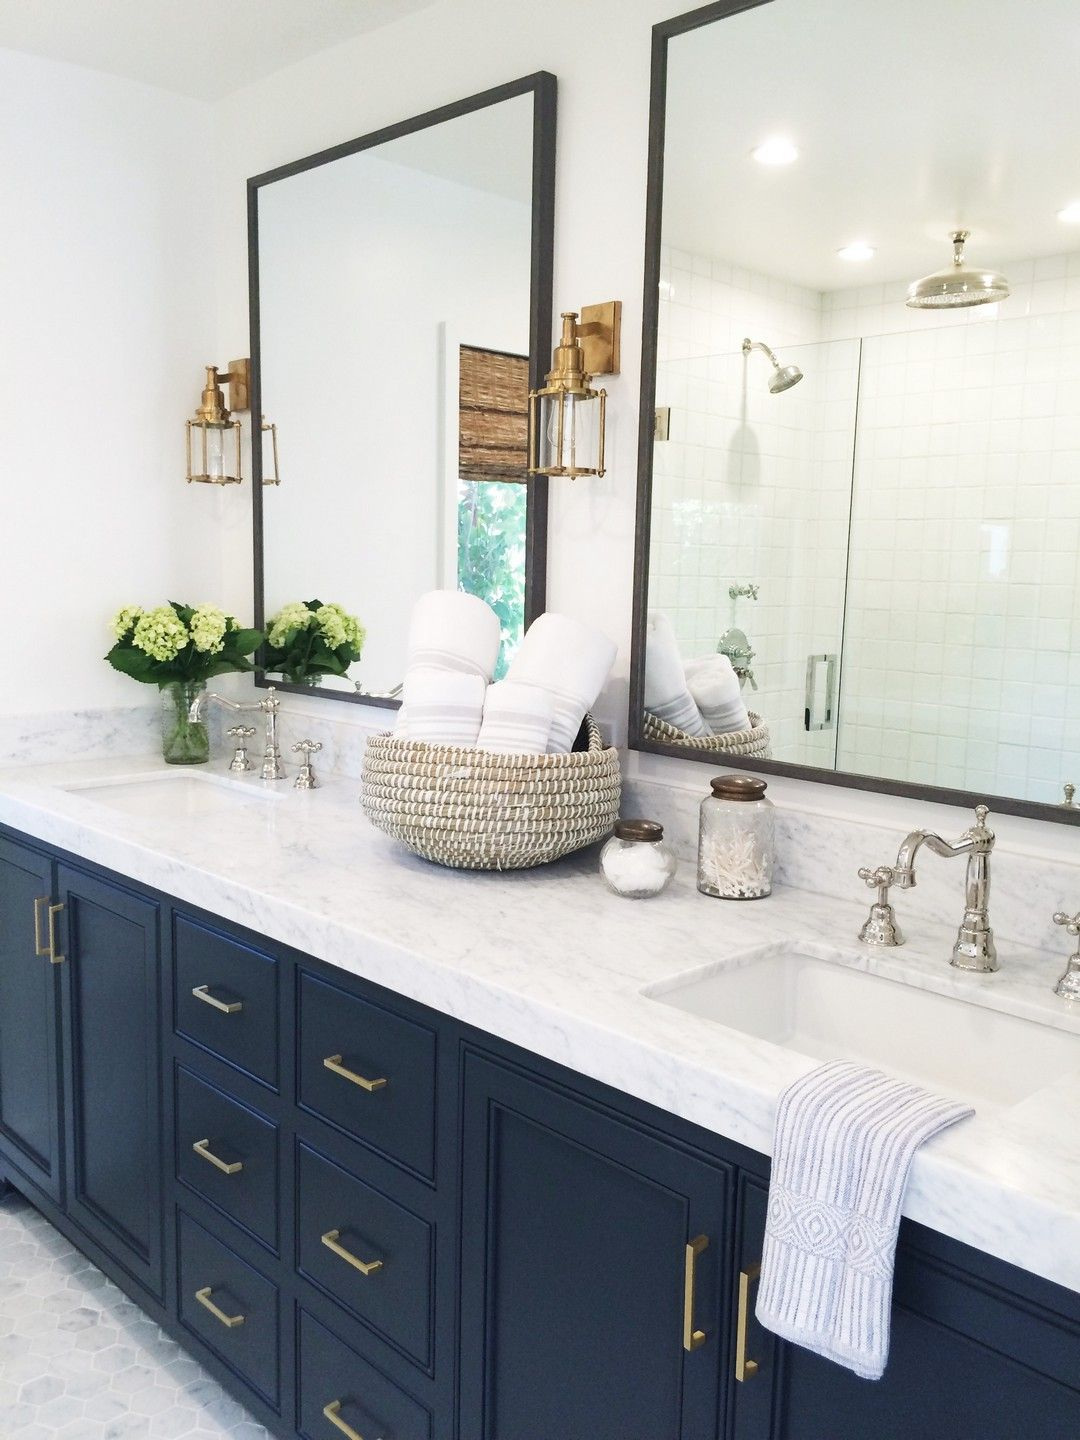 54 Gorgeous Farmhouse Master Bathroom Decorating Ideas | Bathroom ...